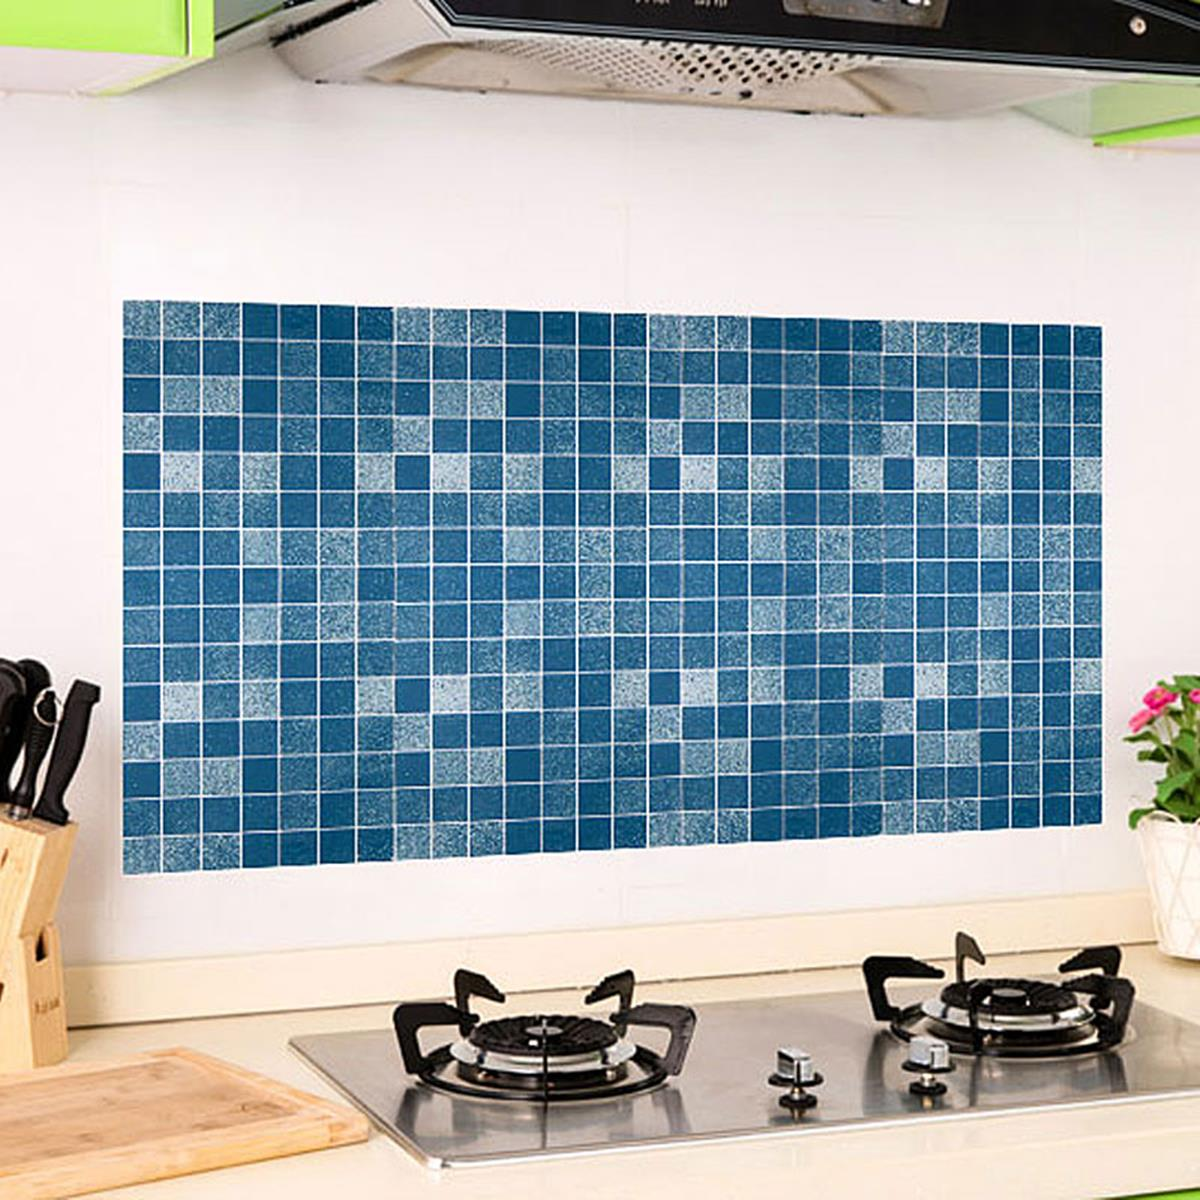 Online Shop Brick M-osaic Kitchen Bathroom Foil Beauty 3D Wallpaper ...